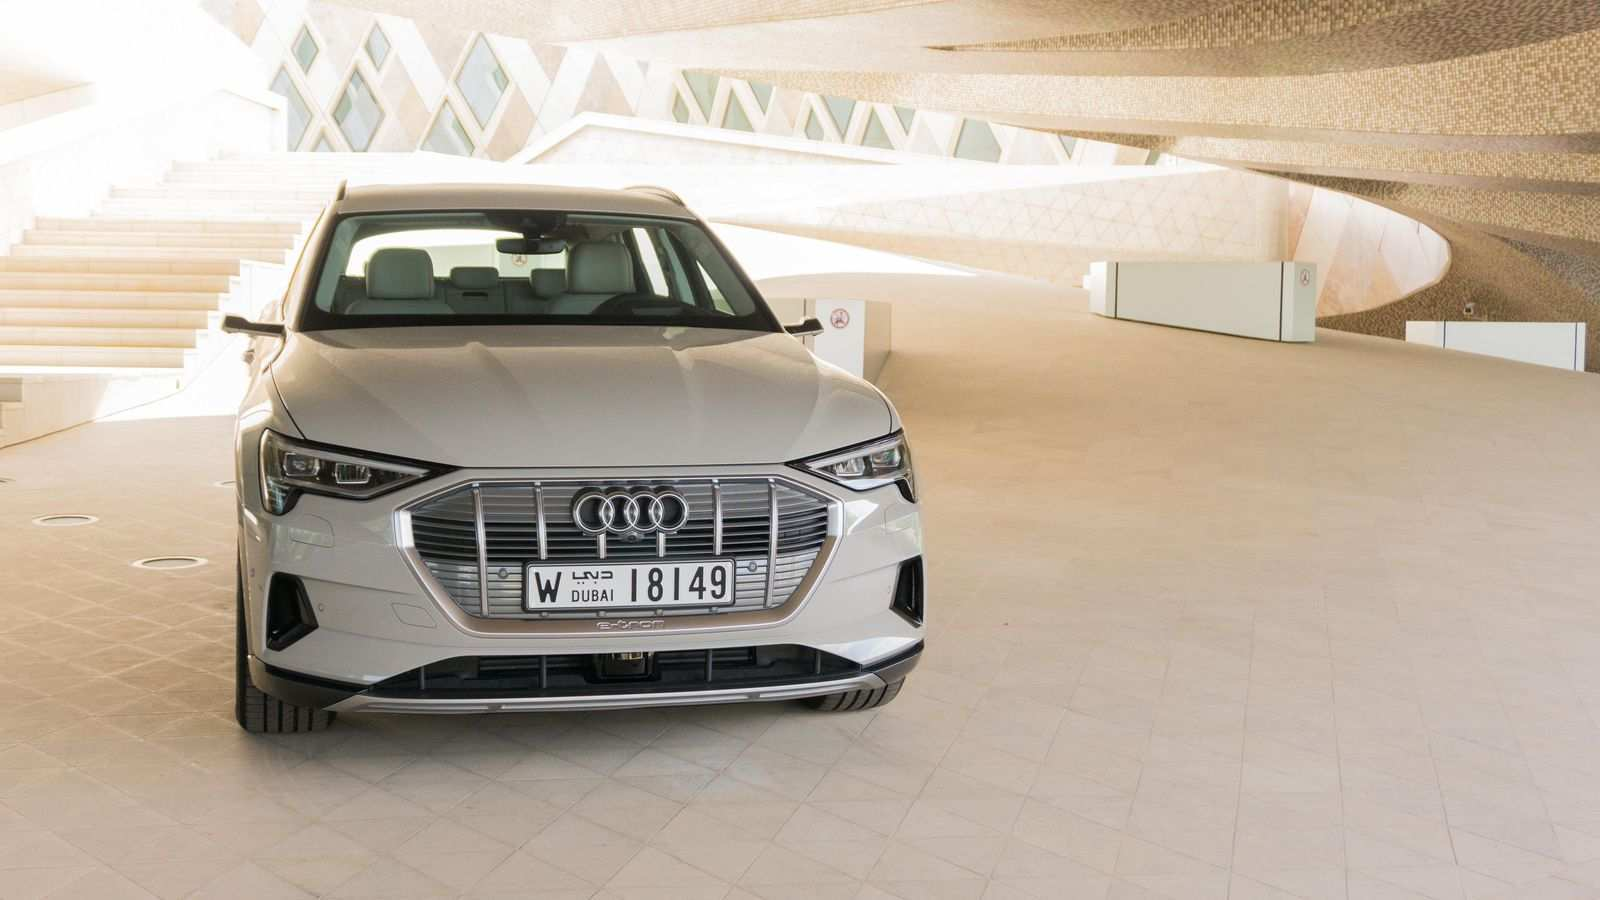 40 The Best 2019 Audi E Tron Quattro Release Date Review